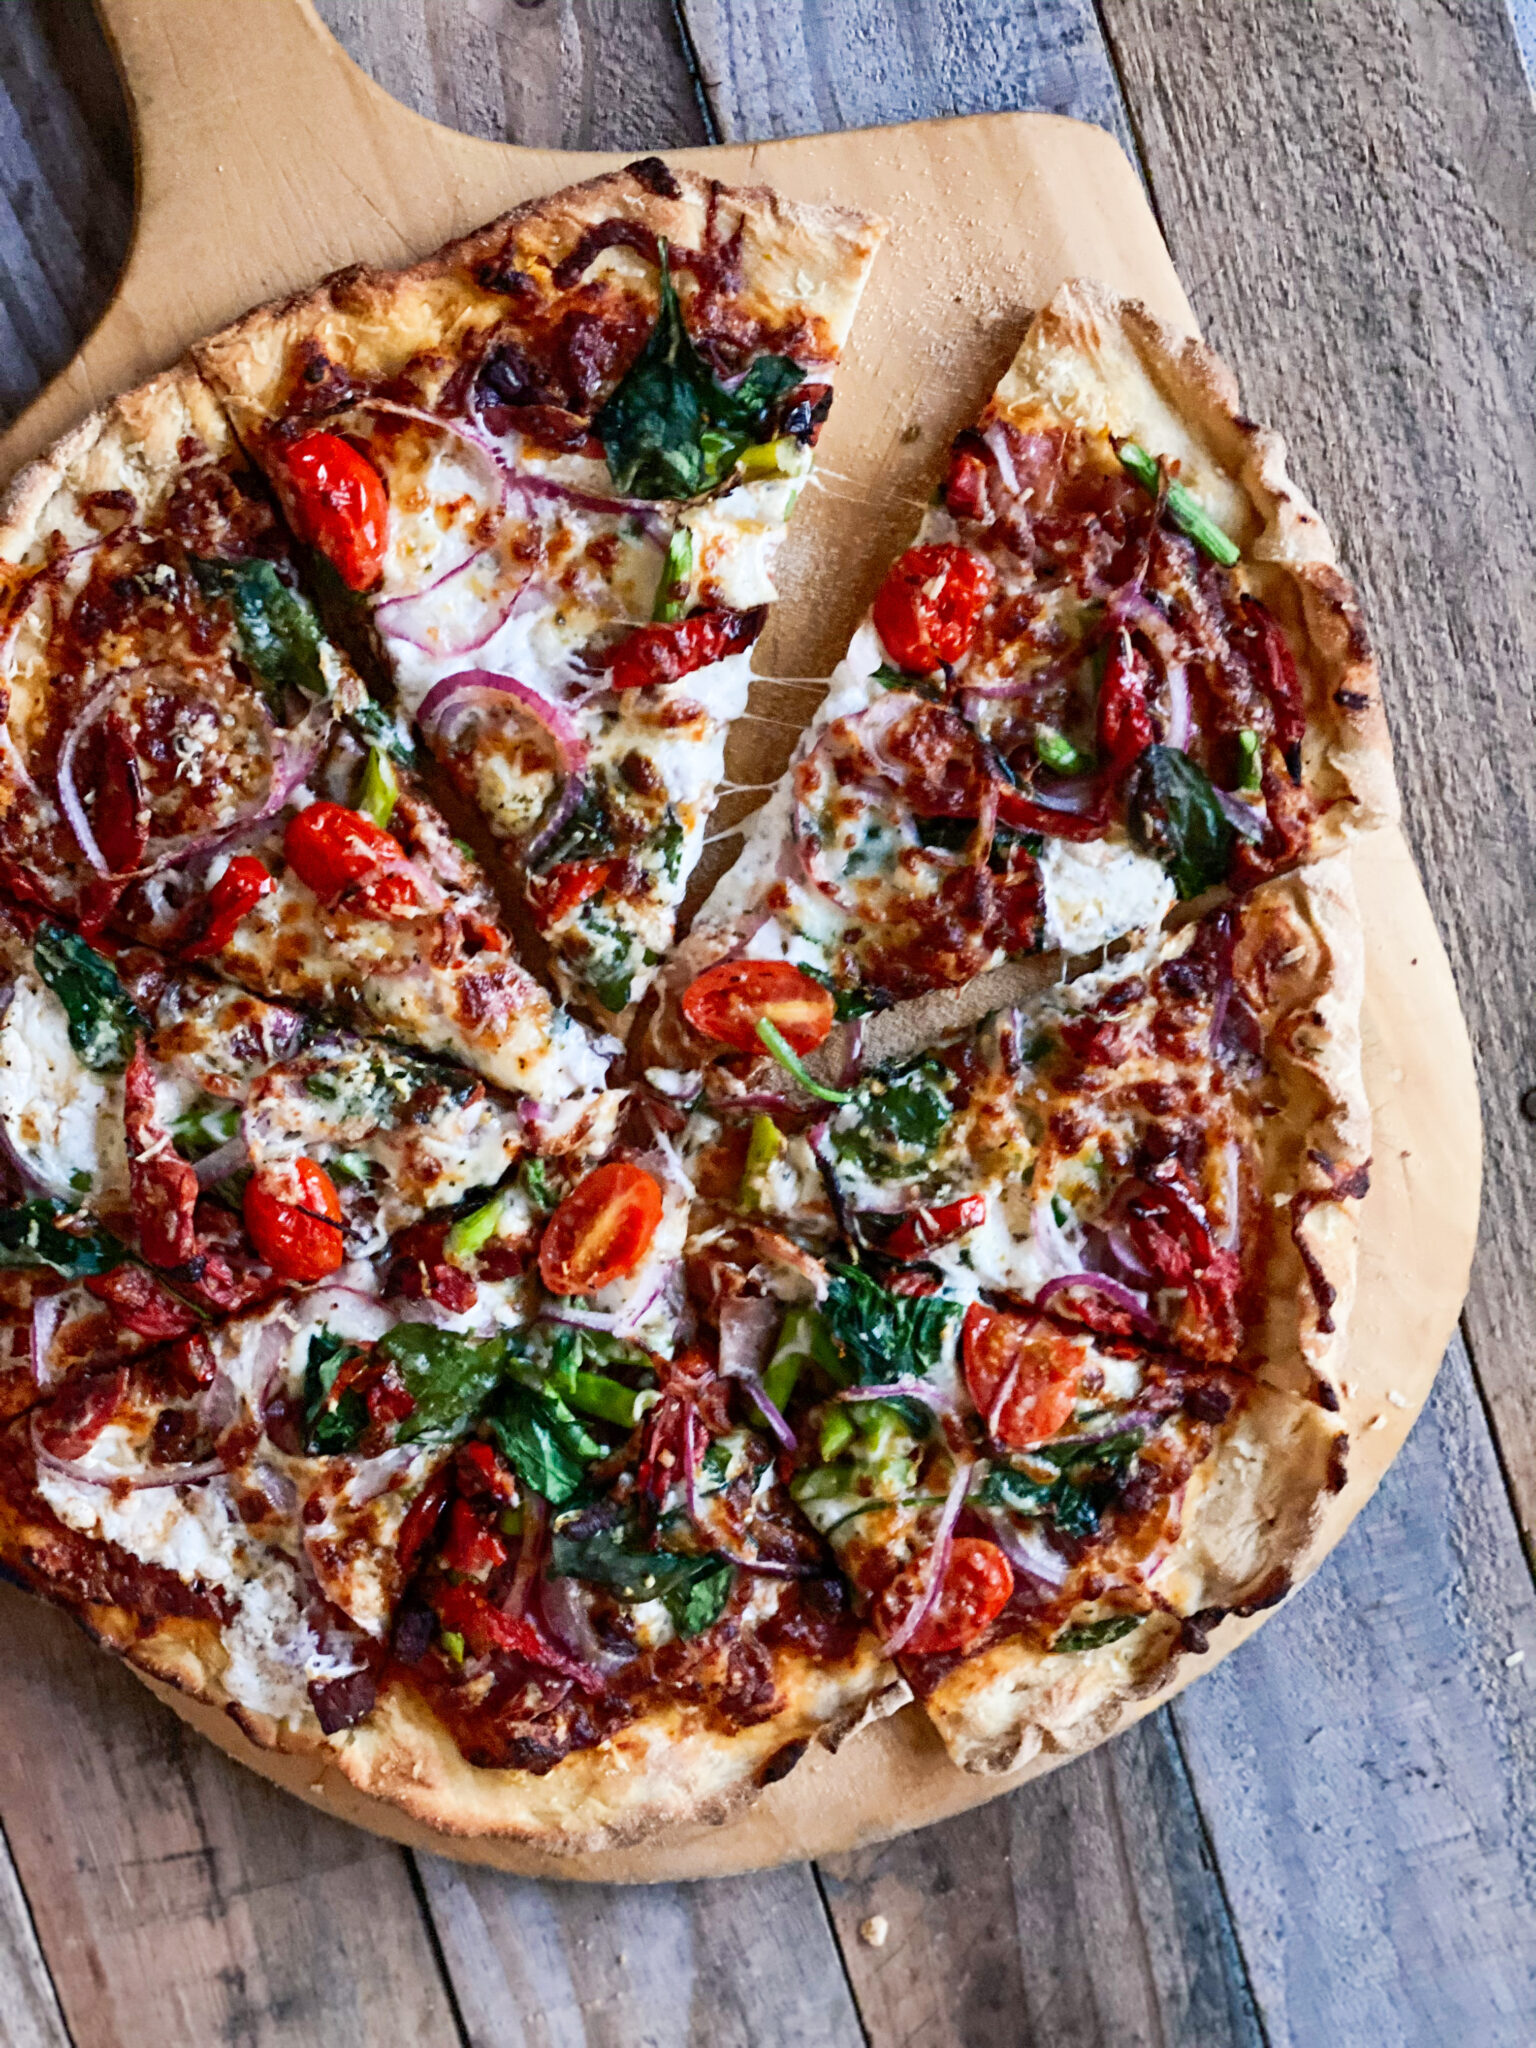 Sourdough Pizza with lots of toppings sliced on a board